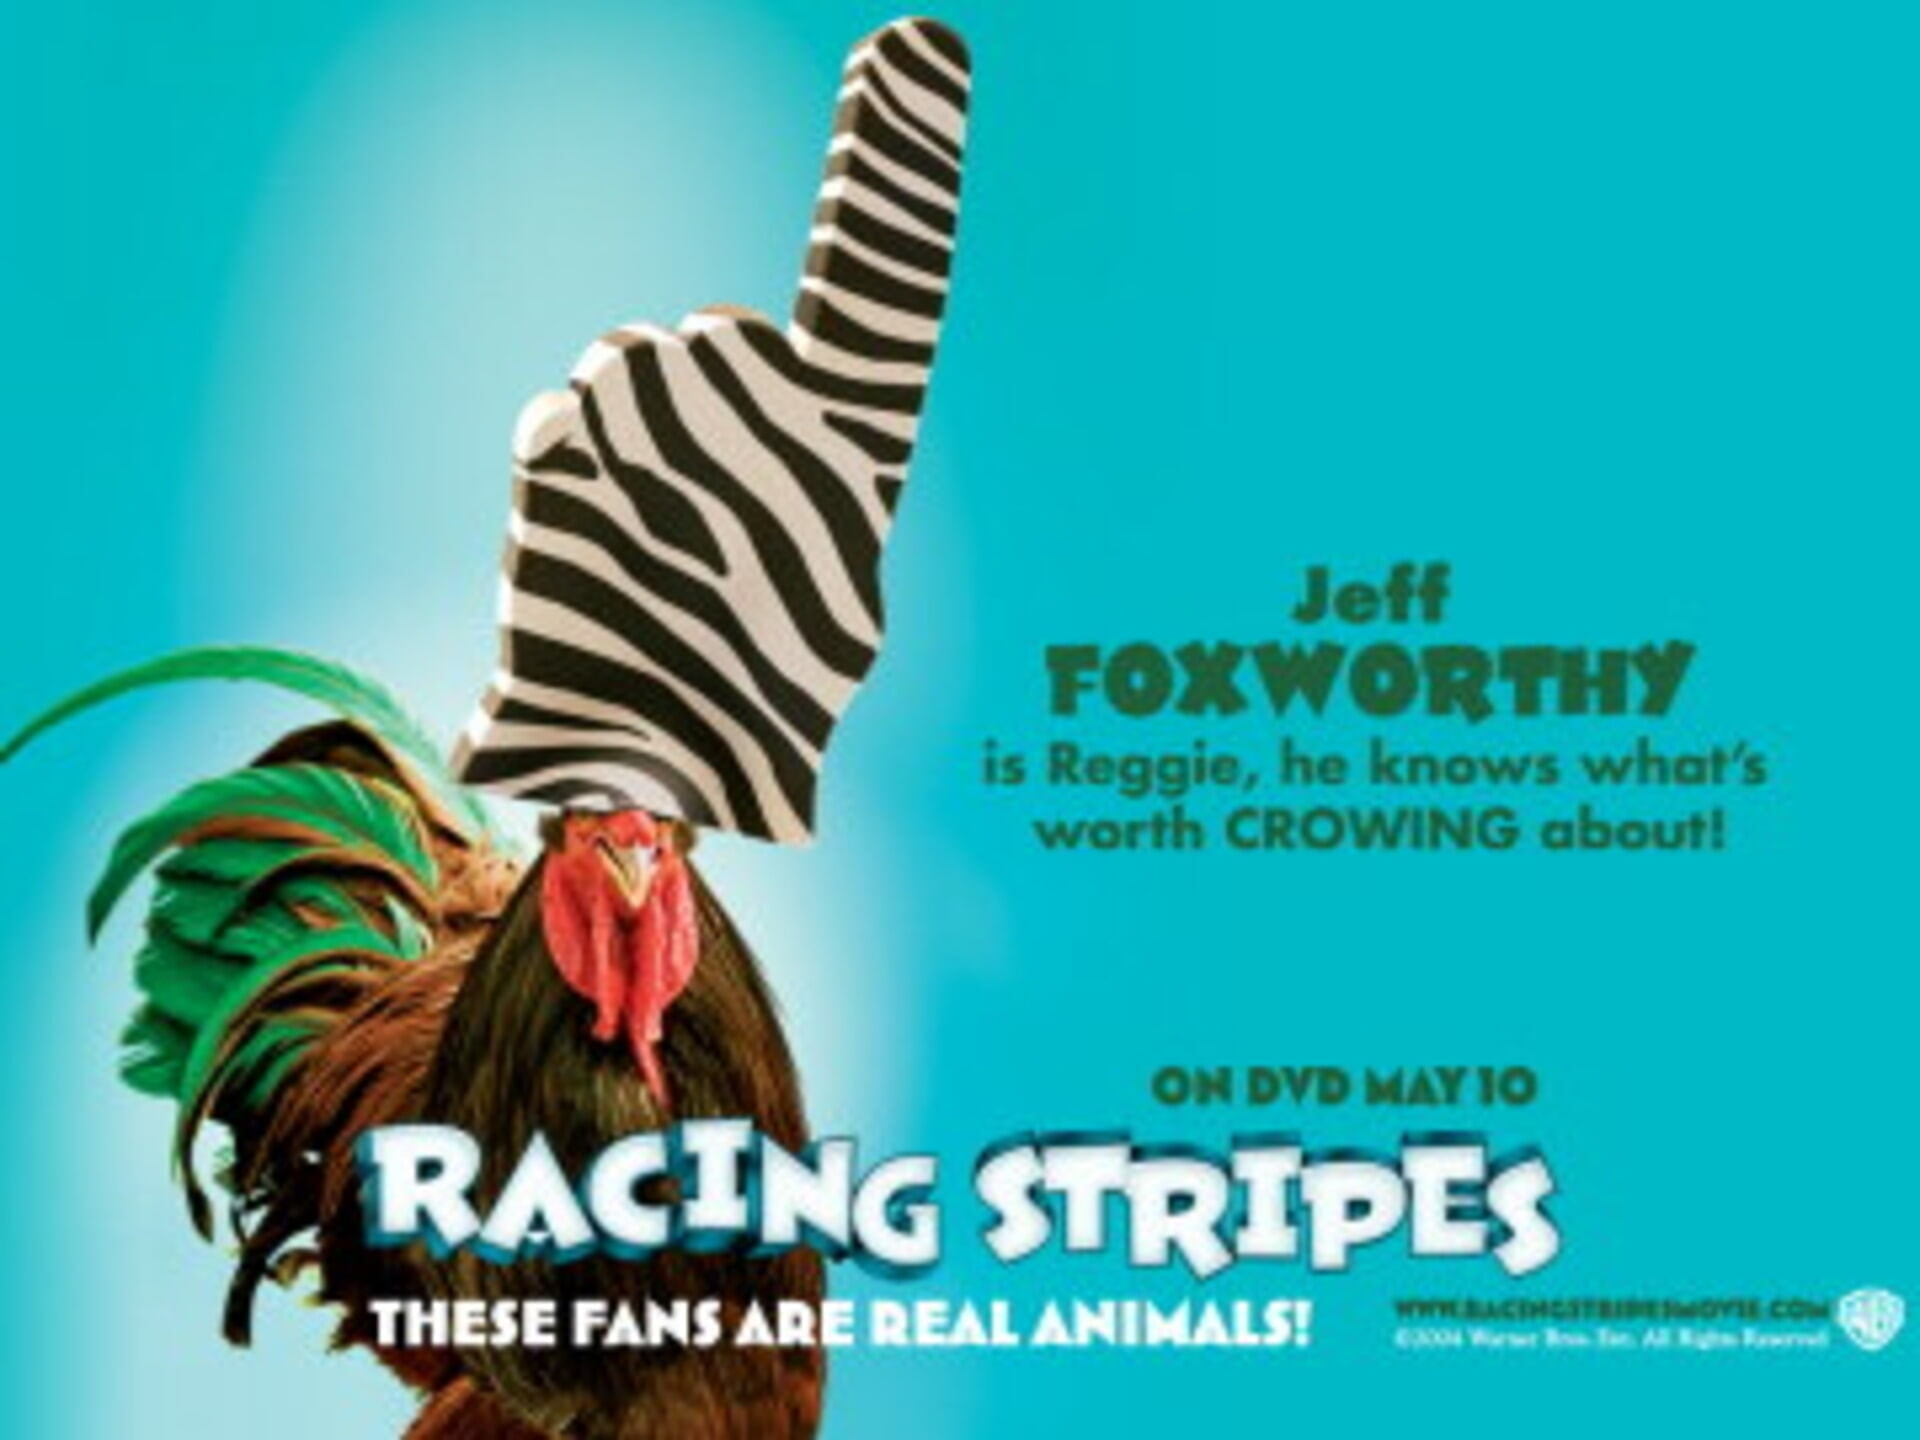 Racing Stripes - Image 42